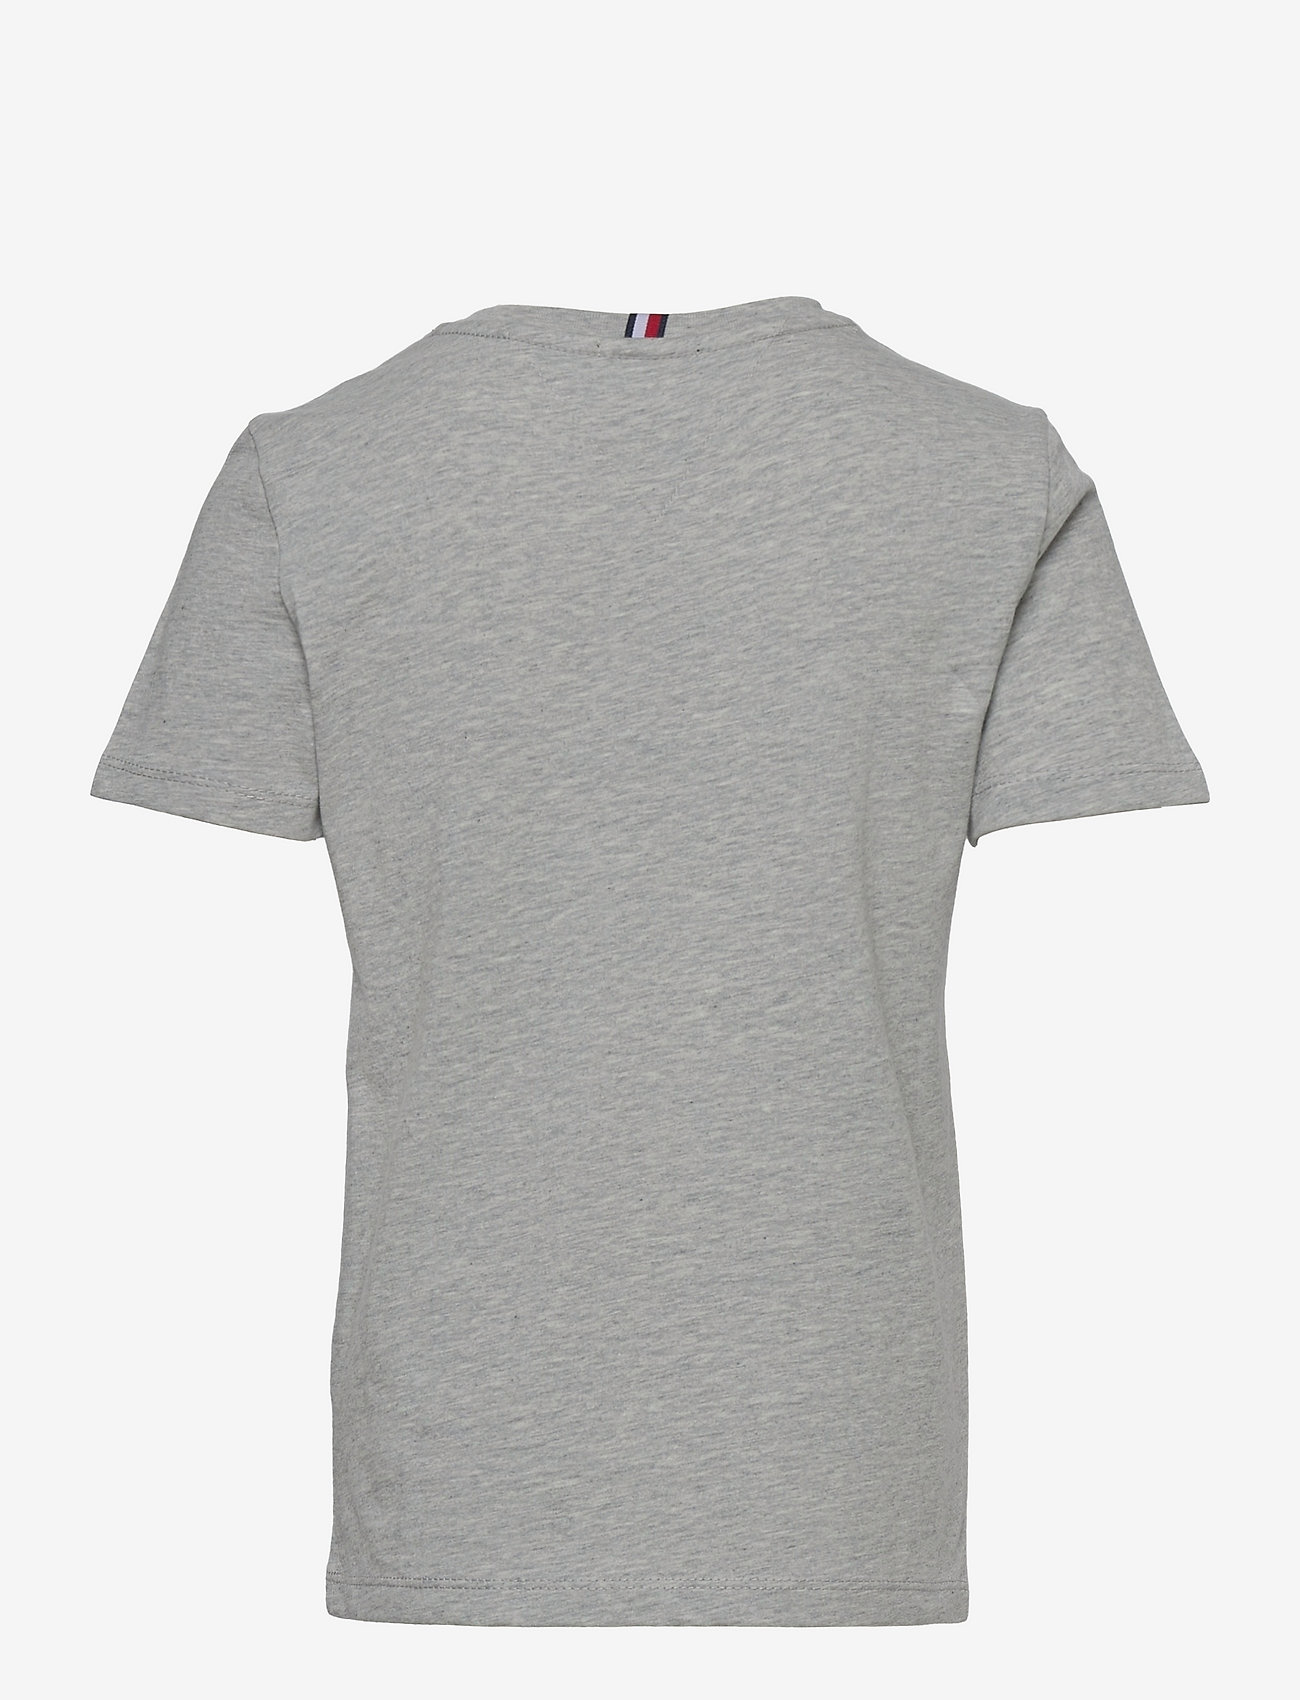 Tommy Hilfiger - TAPED POCKET TEE S/S - pattern short-sleeved t-shirt - grey heather - 1